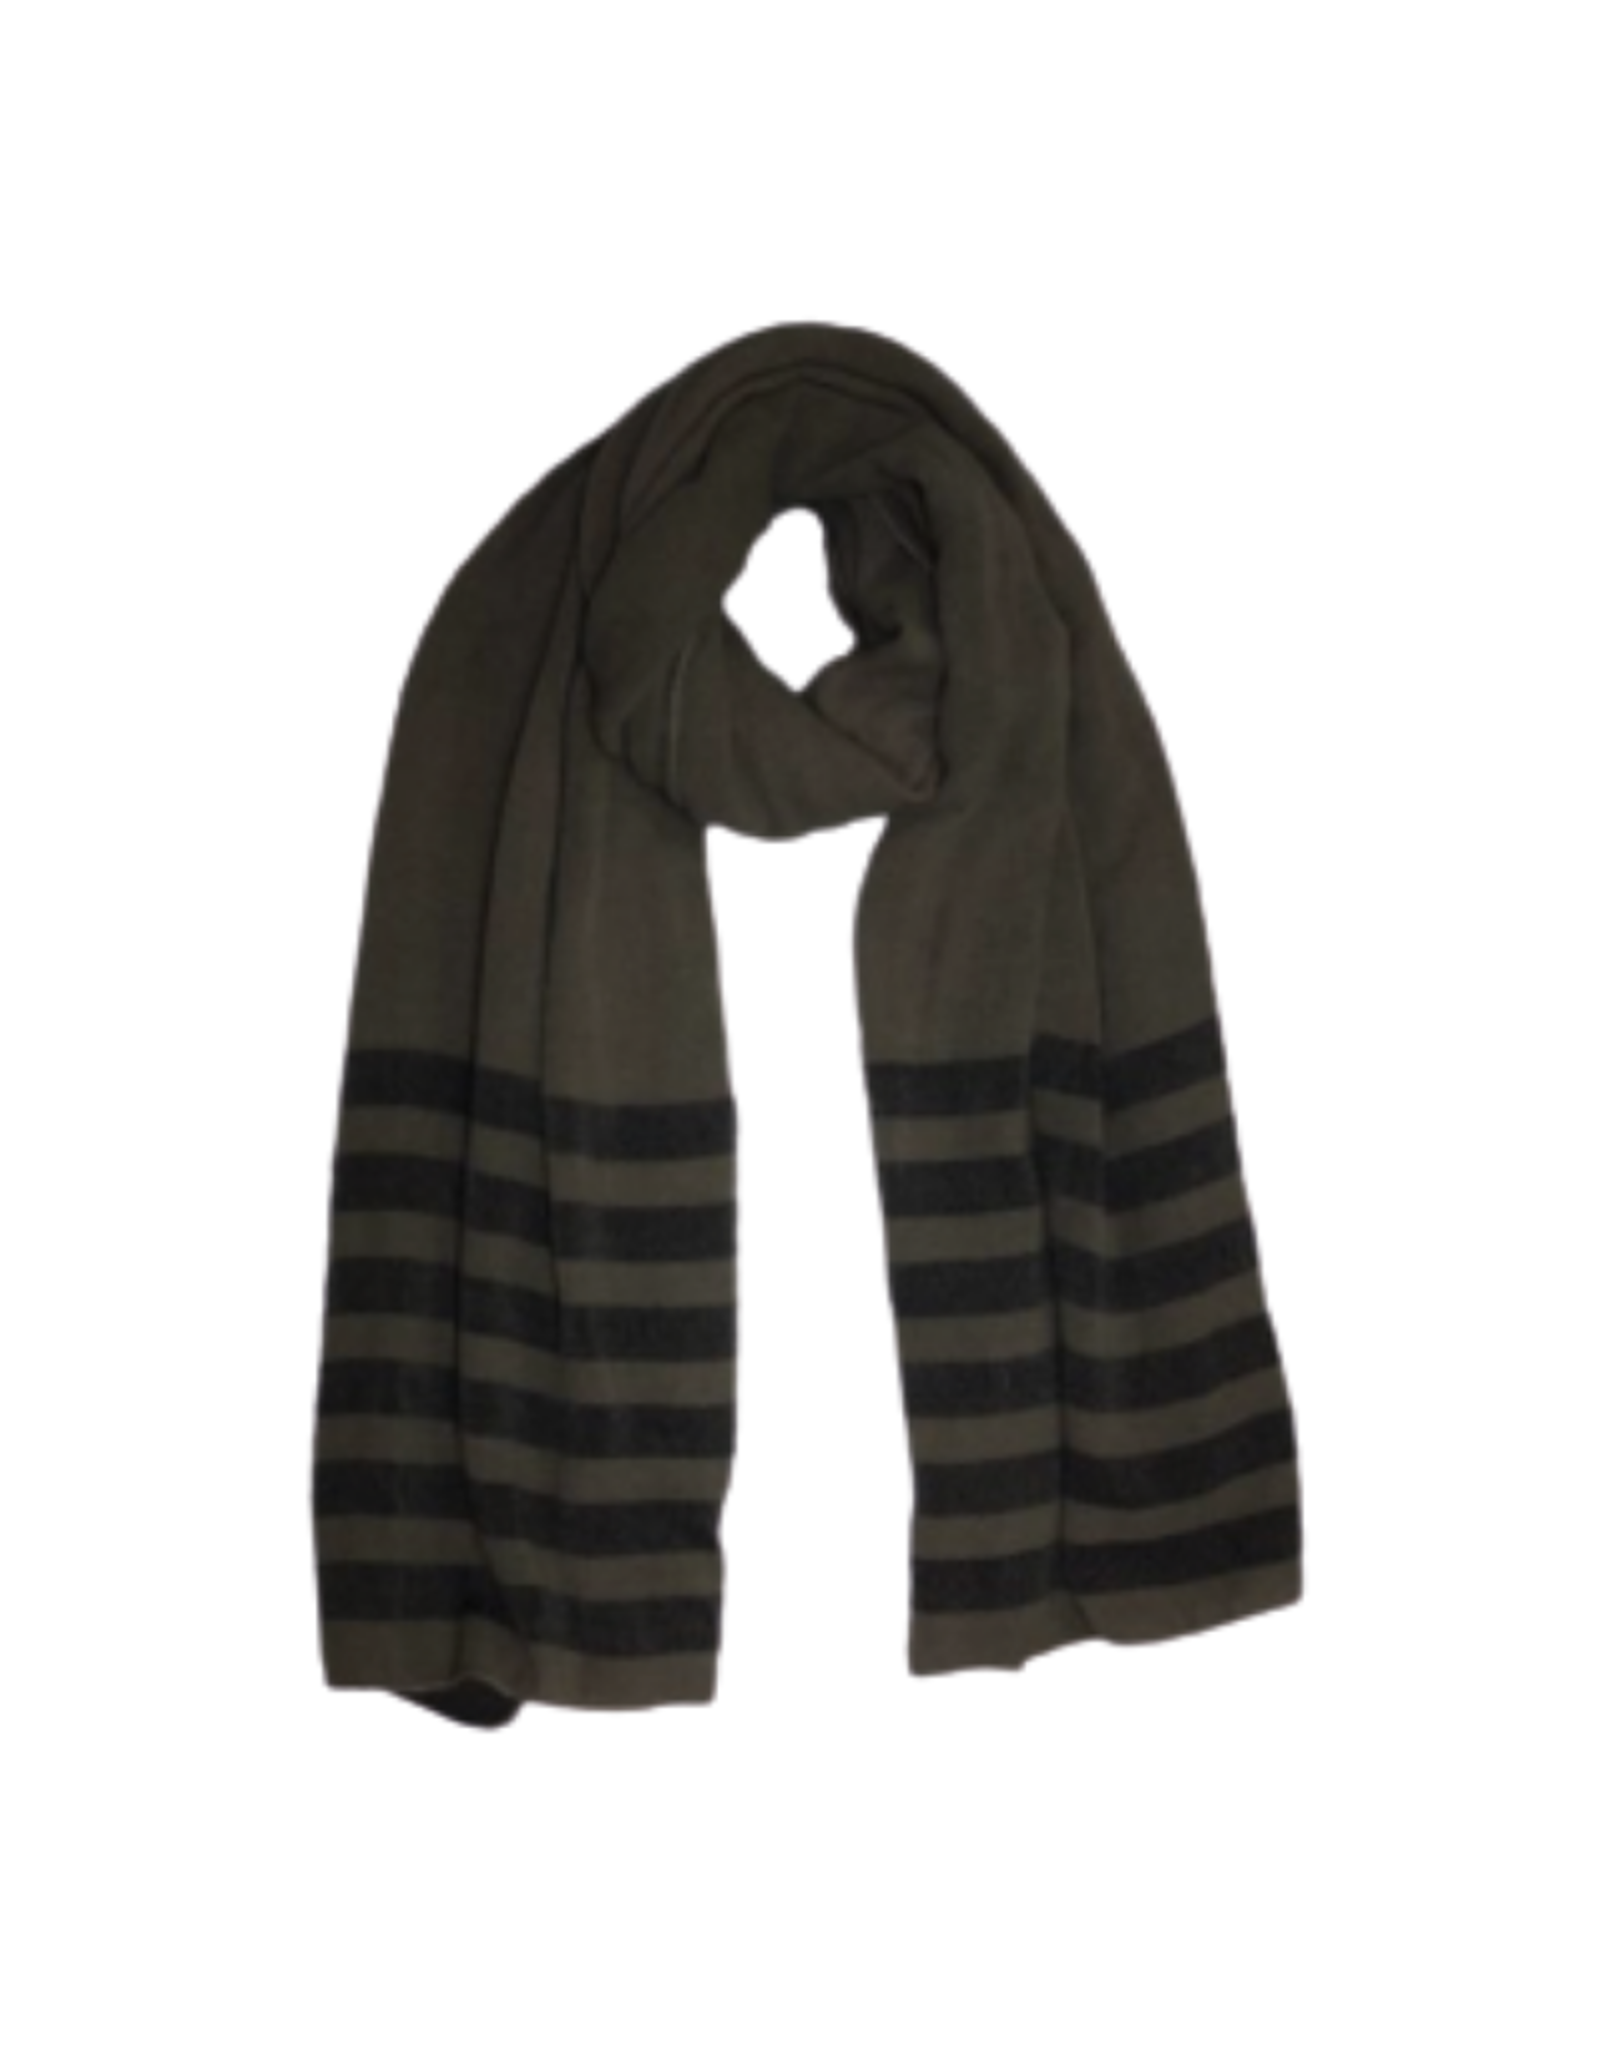 SCARF-GREY WBLK STRIPED ENDS